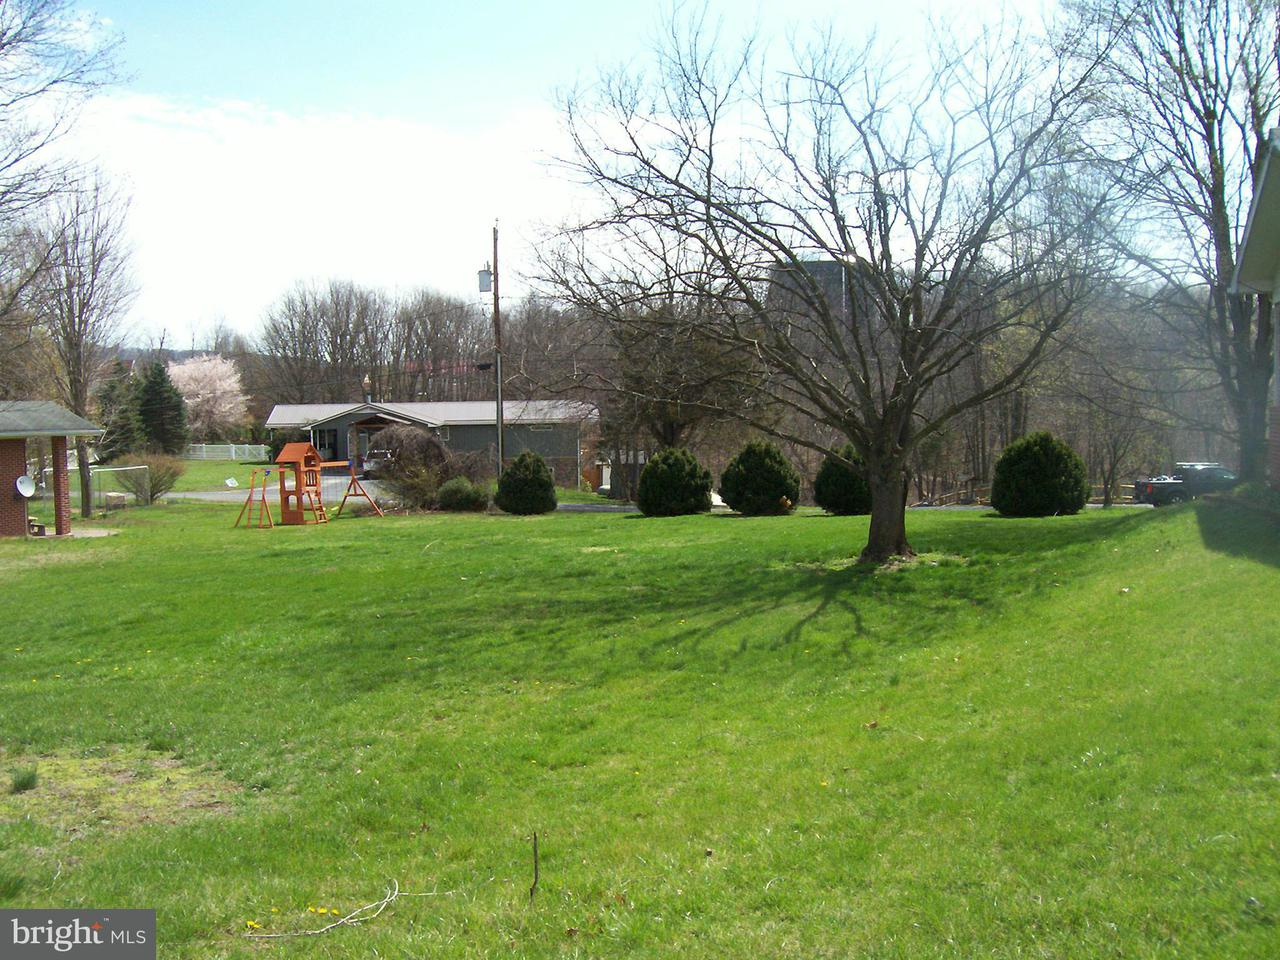 Land for Sale at 0 Woodlawn Dr Cabins, West Virginia 26855 United States